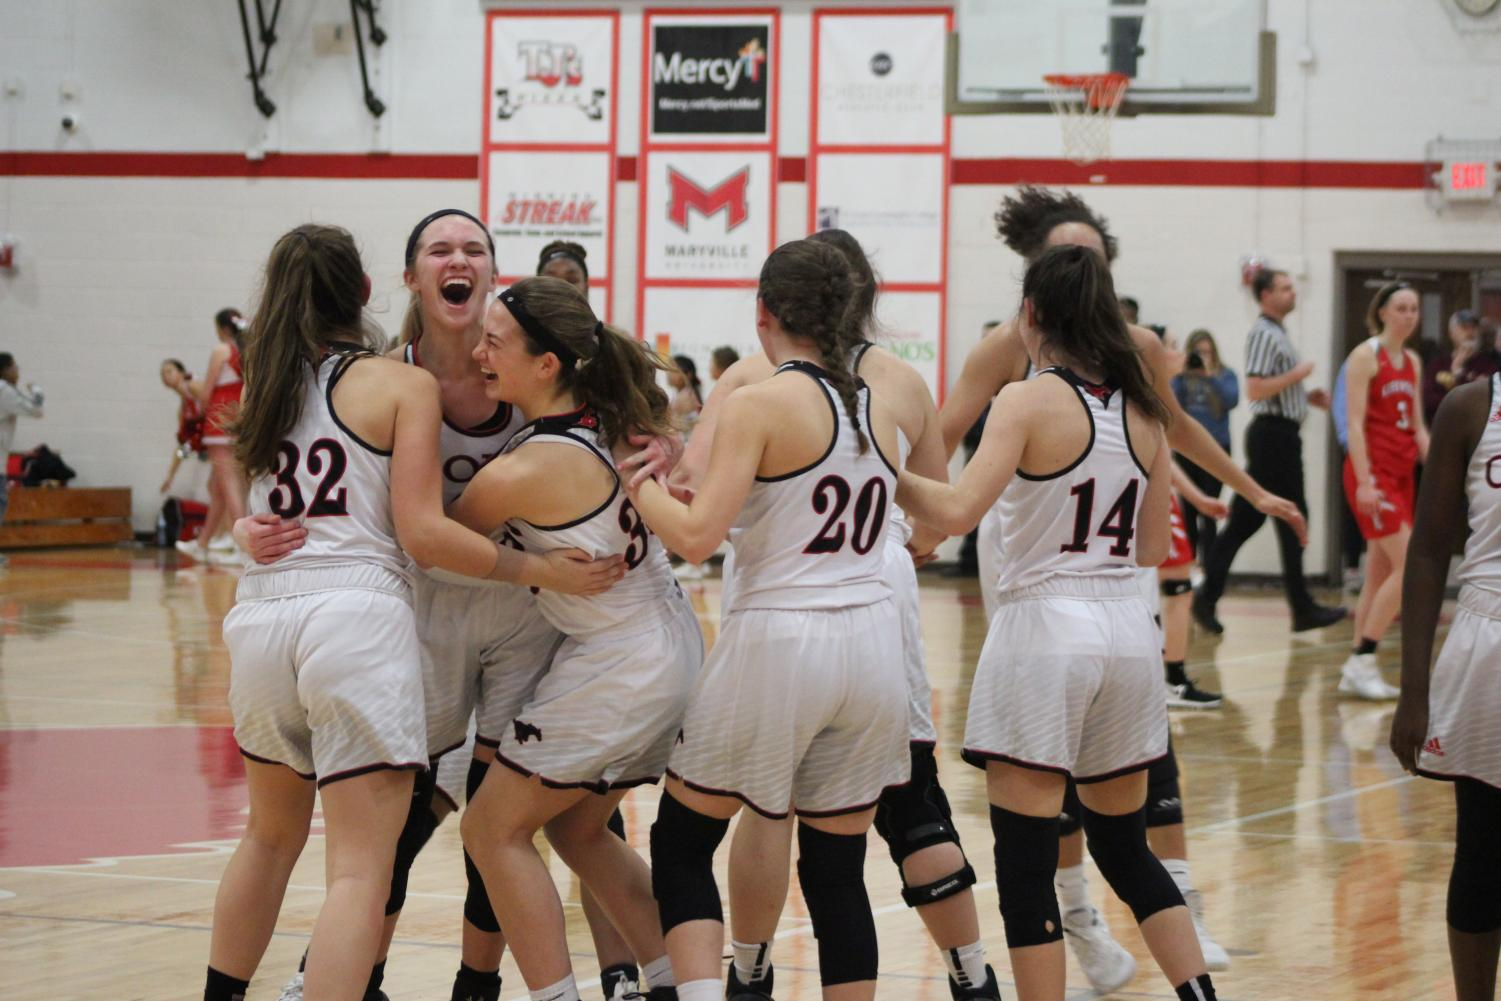 The girls varsity basketball team celebrates their district championship win on March 1, 2019 against Kirkwood.